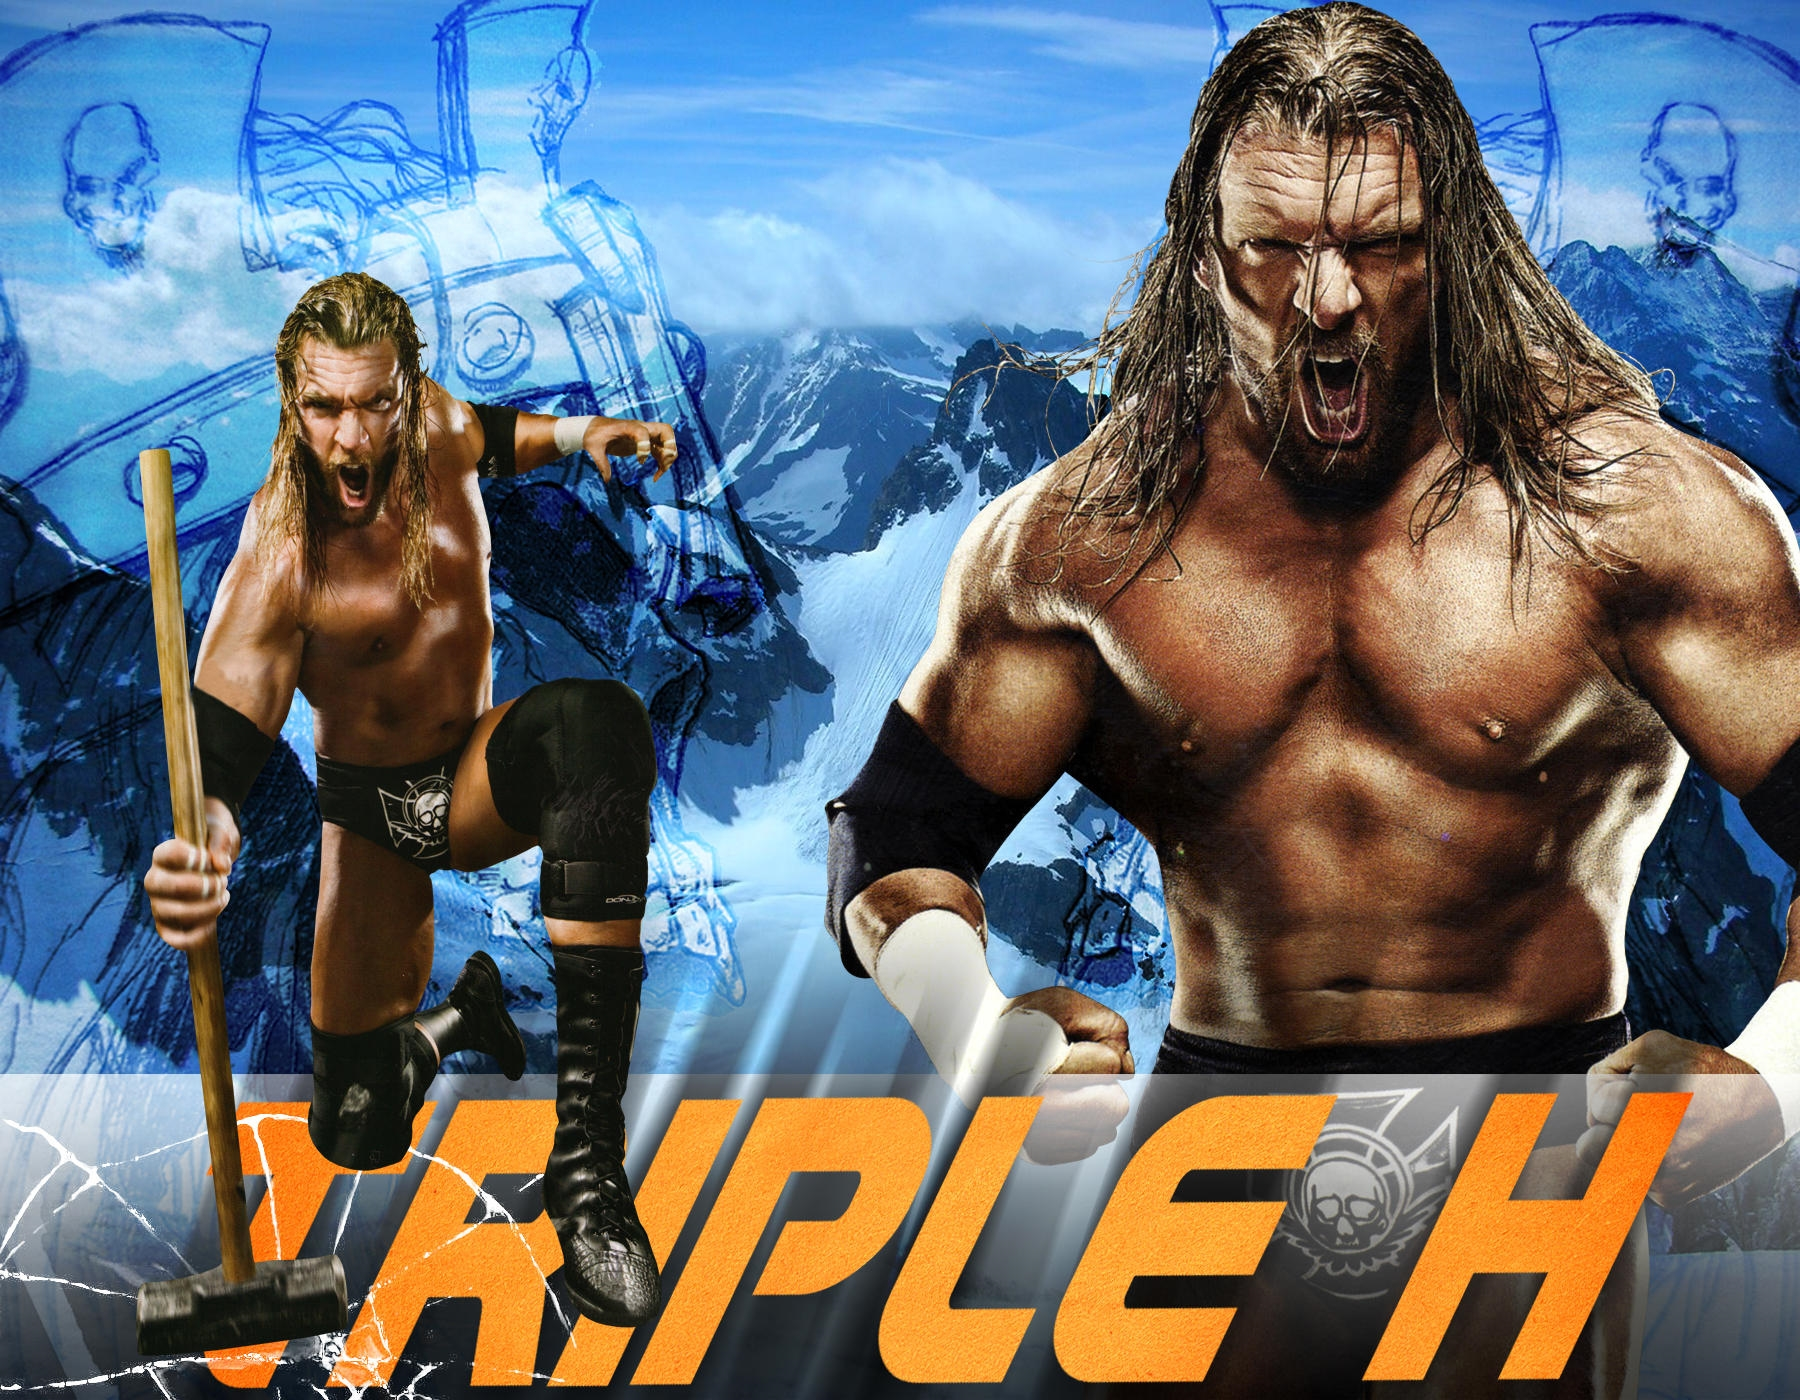 triple hhh wwe wallpaper